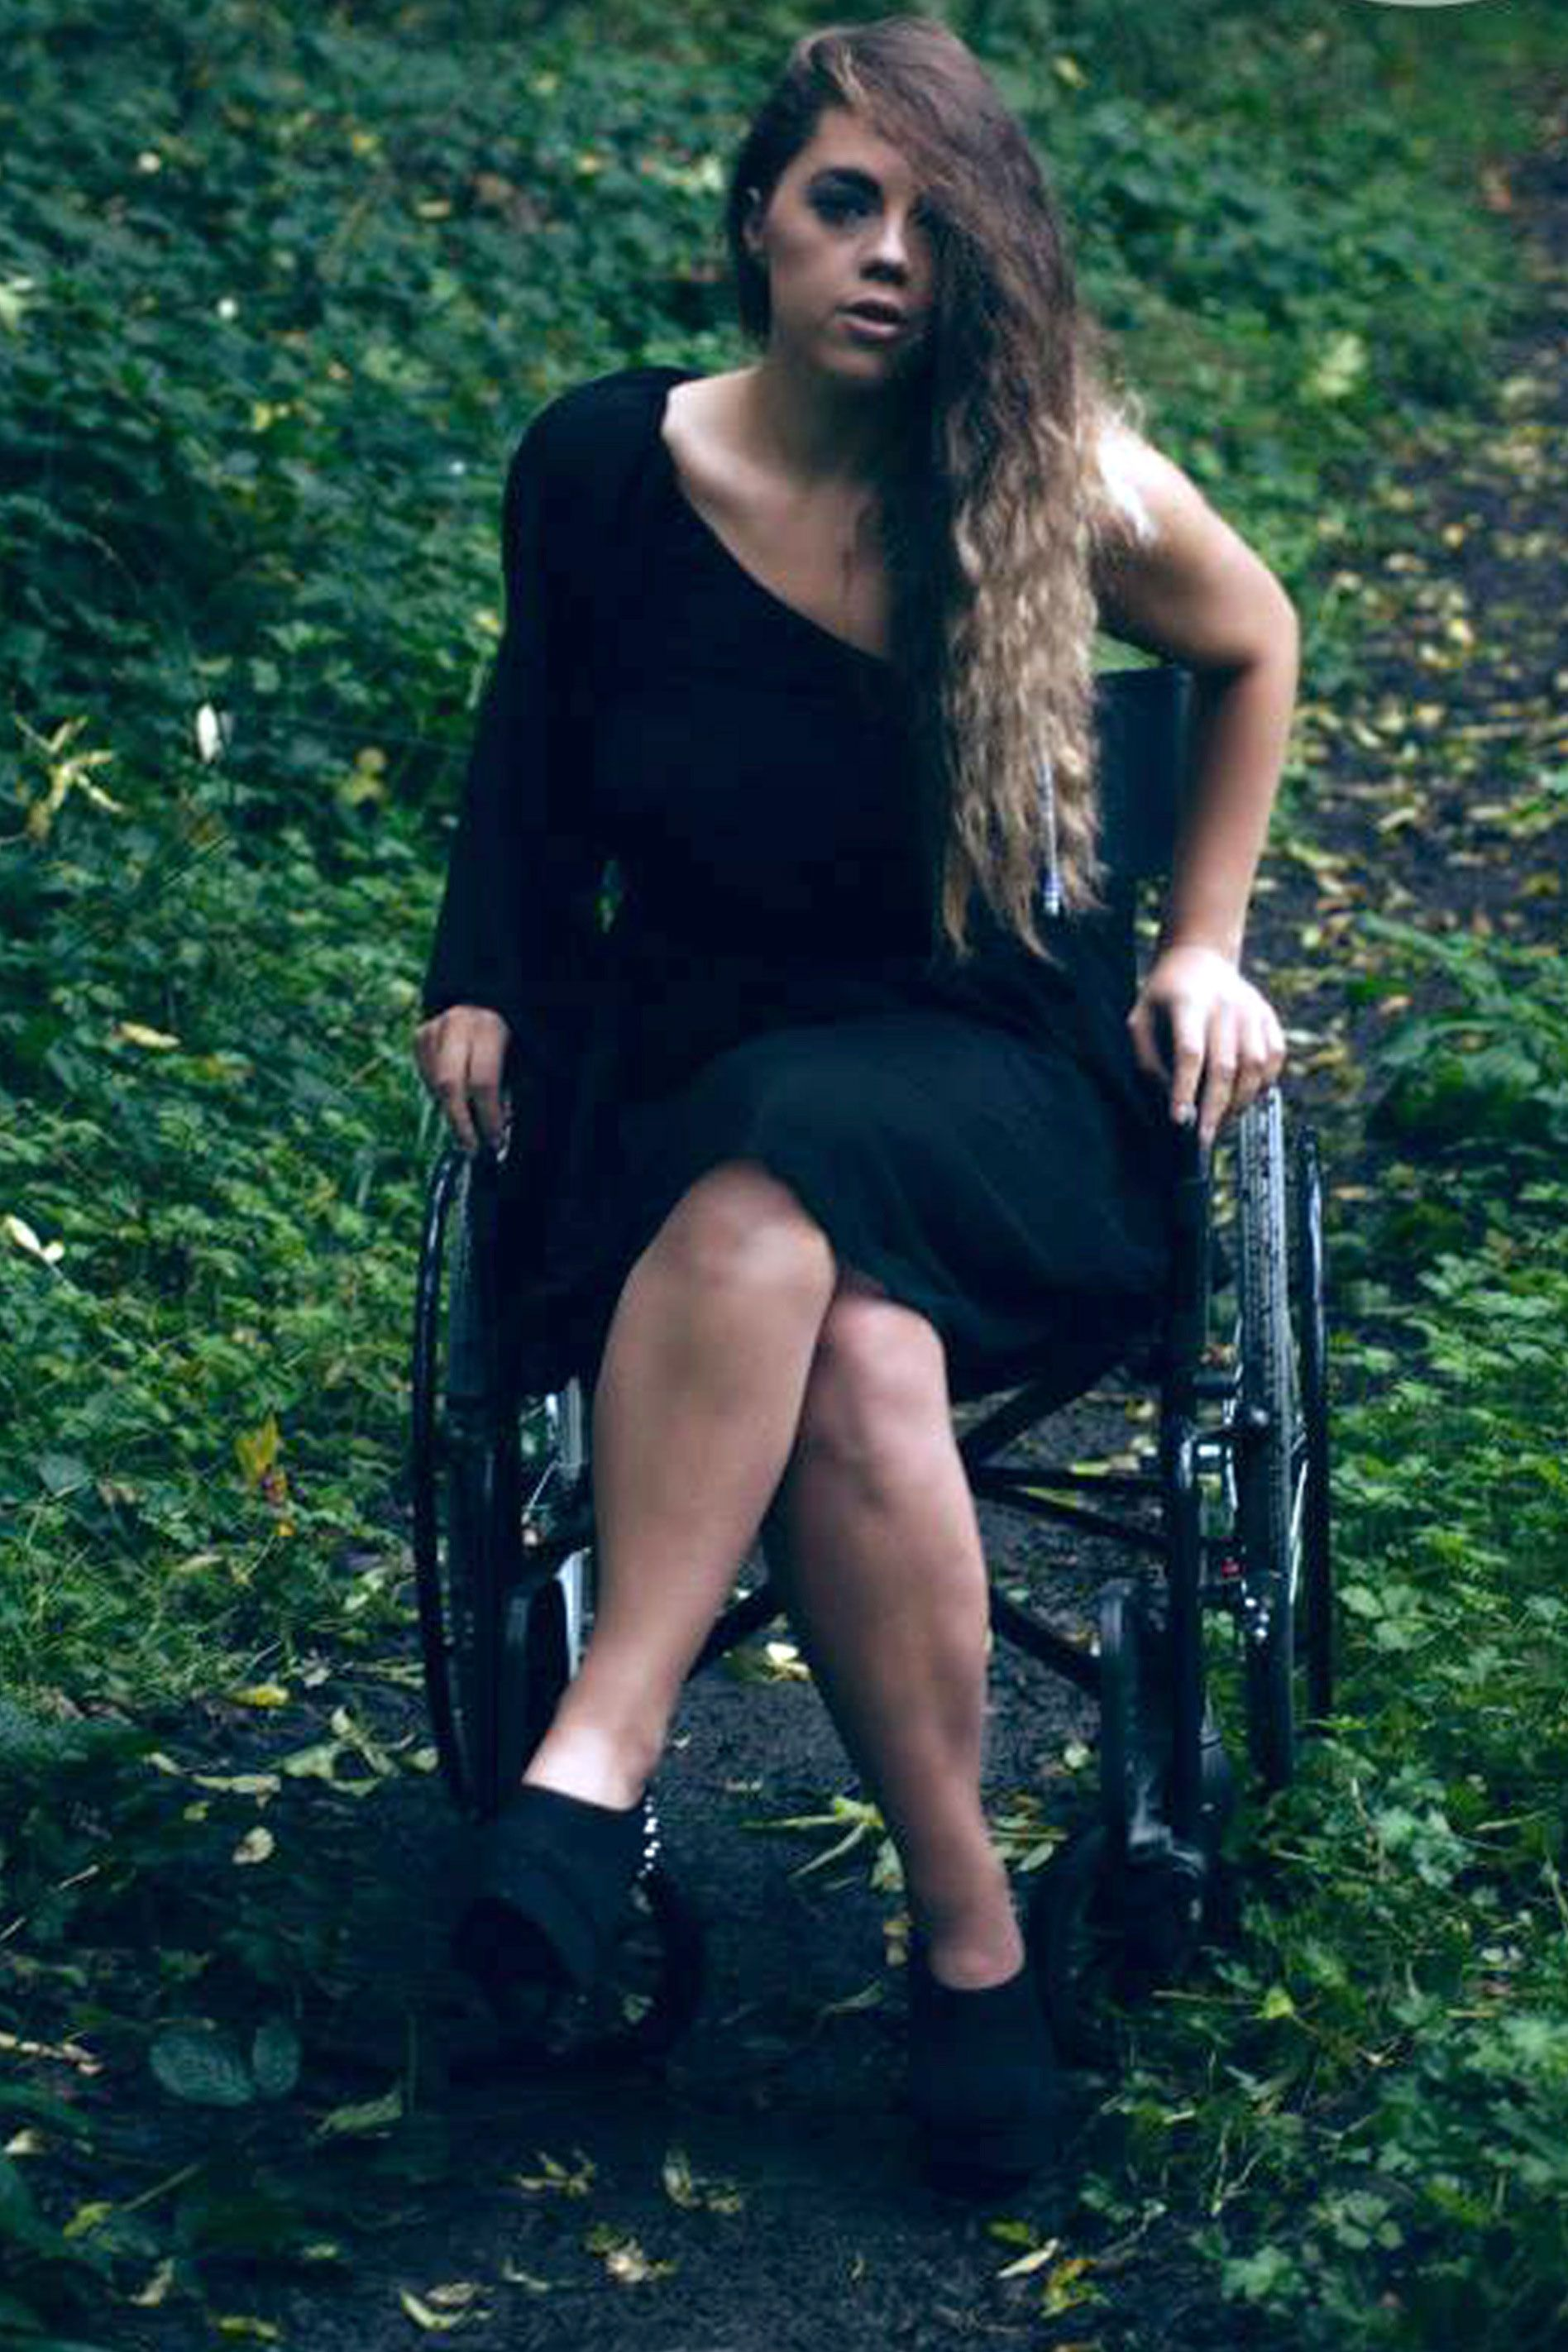 Tiffany adams paraplegic sexual health